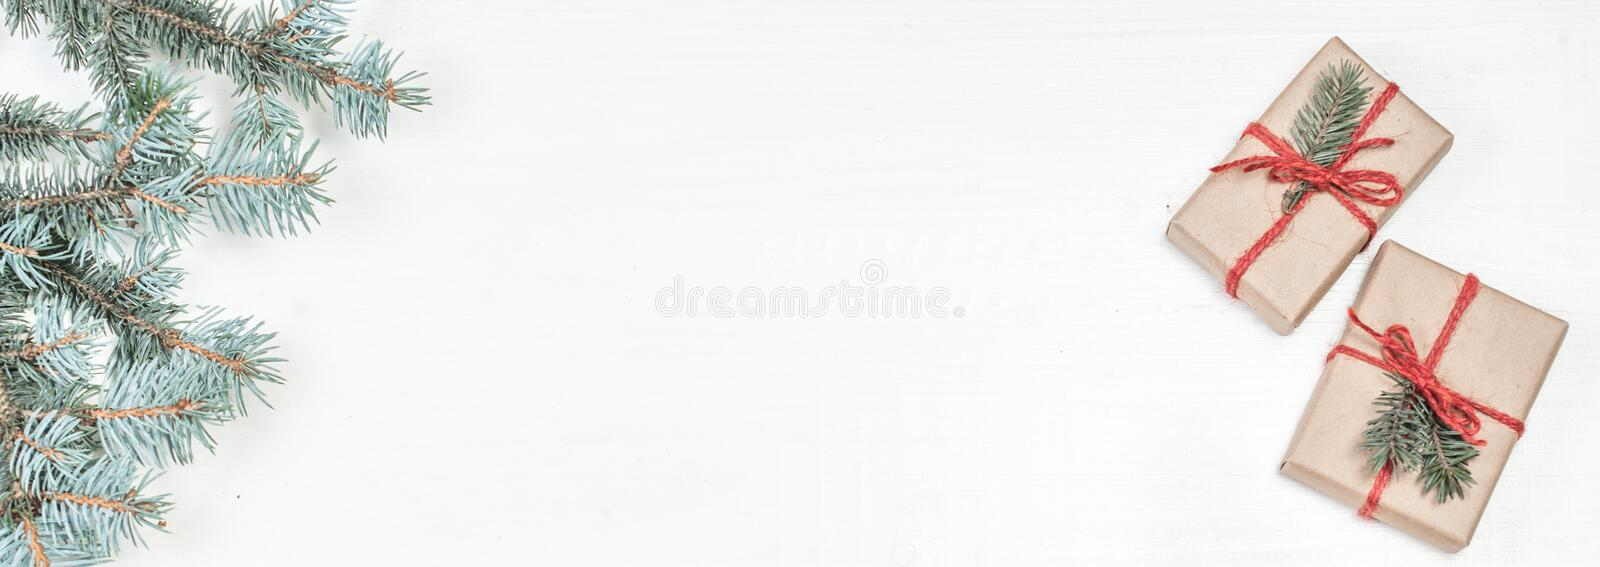 Christmas frame with Fir tree branches on white. Card Merry Christmas and Happy New Year with copy space.. royalty free stock photo